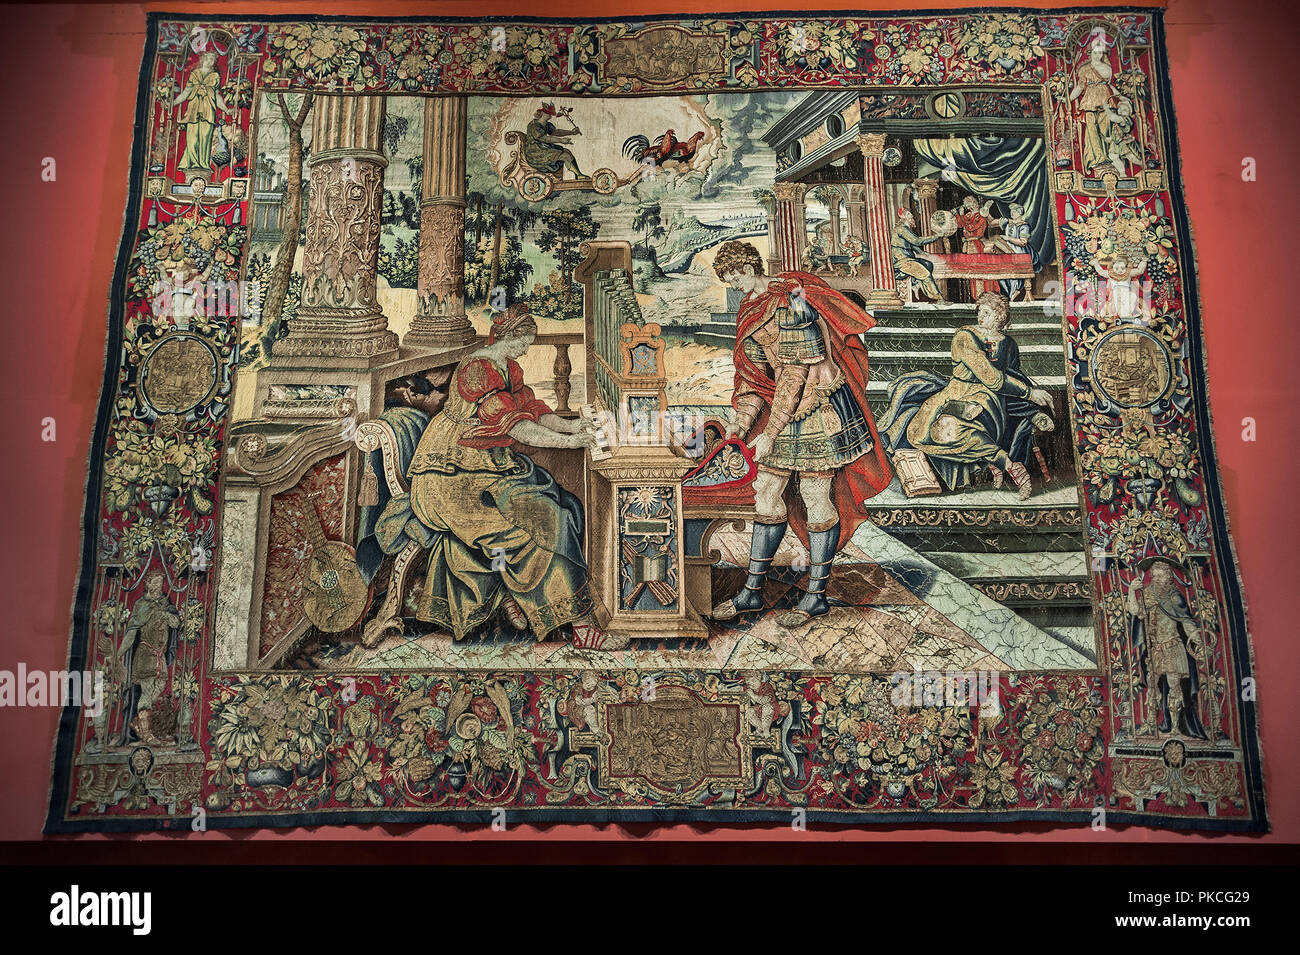 Tapestry, The influence of Mercury on the work of the people, Brussels around 1550/60, National Museum, Mu? Nchen, Upper Bavaria - Stock Image